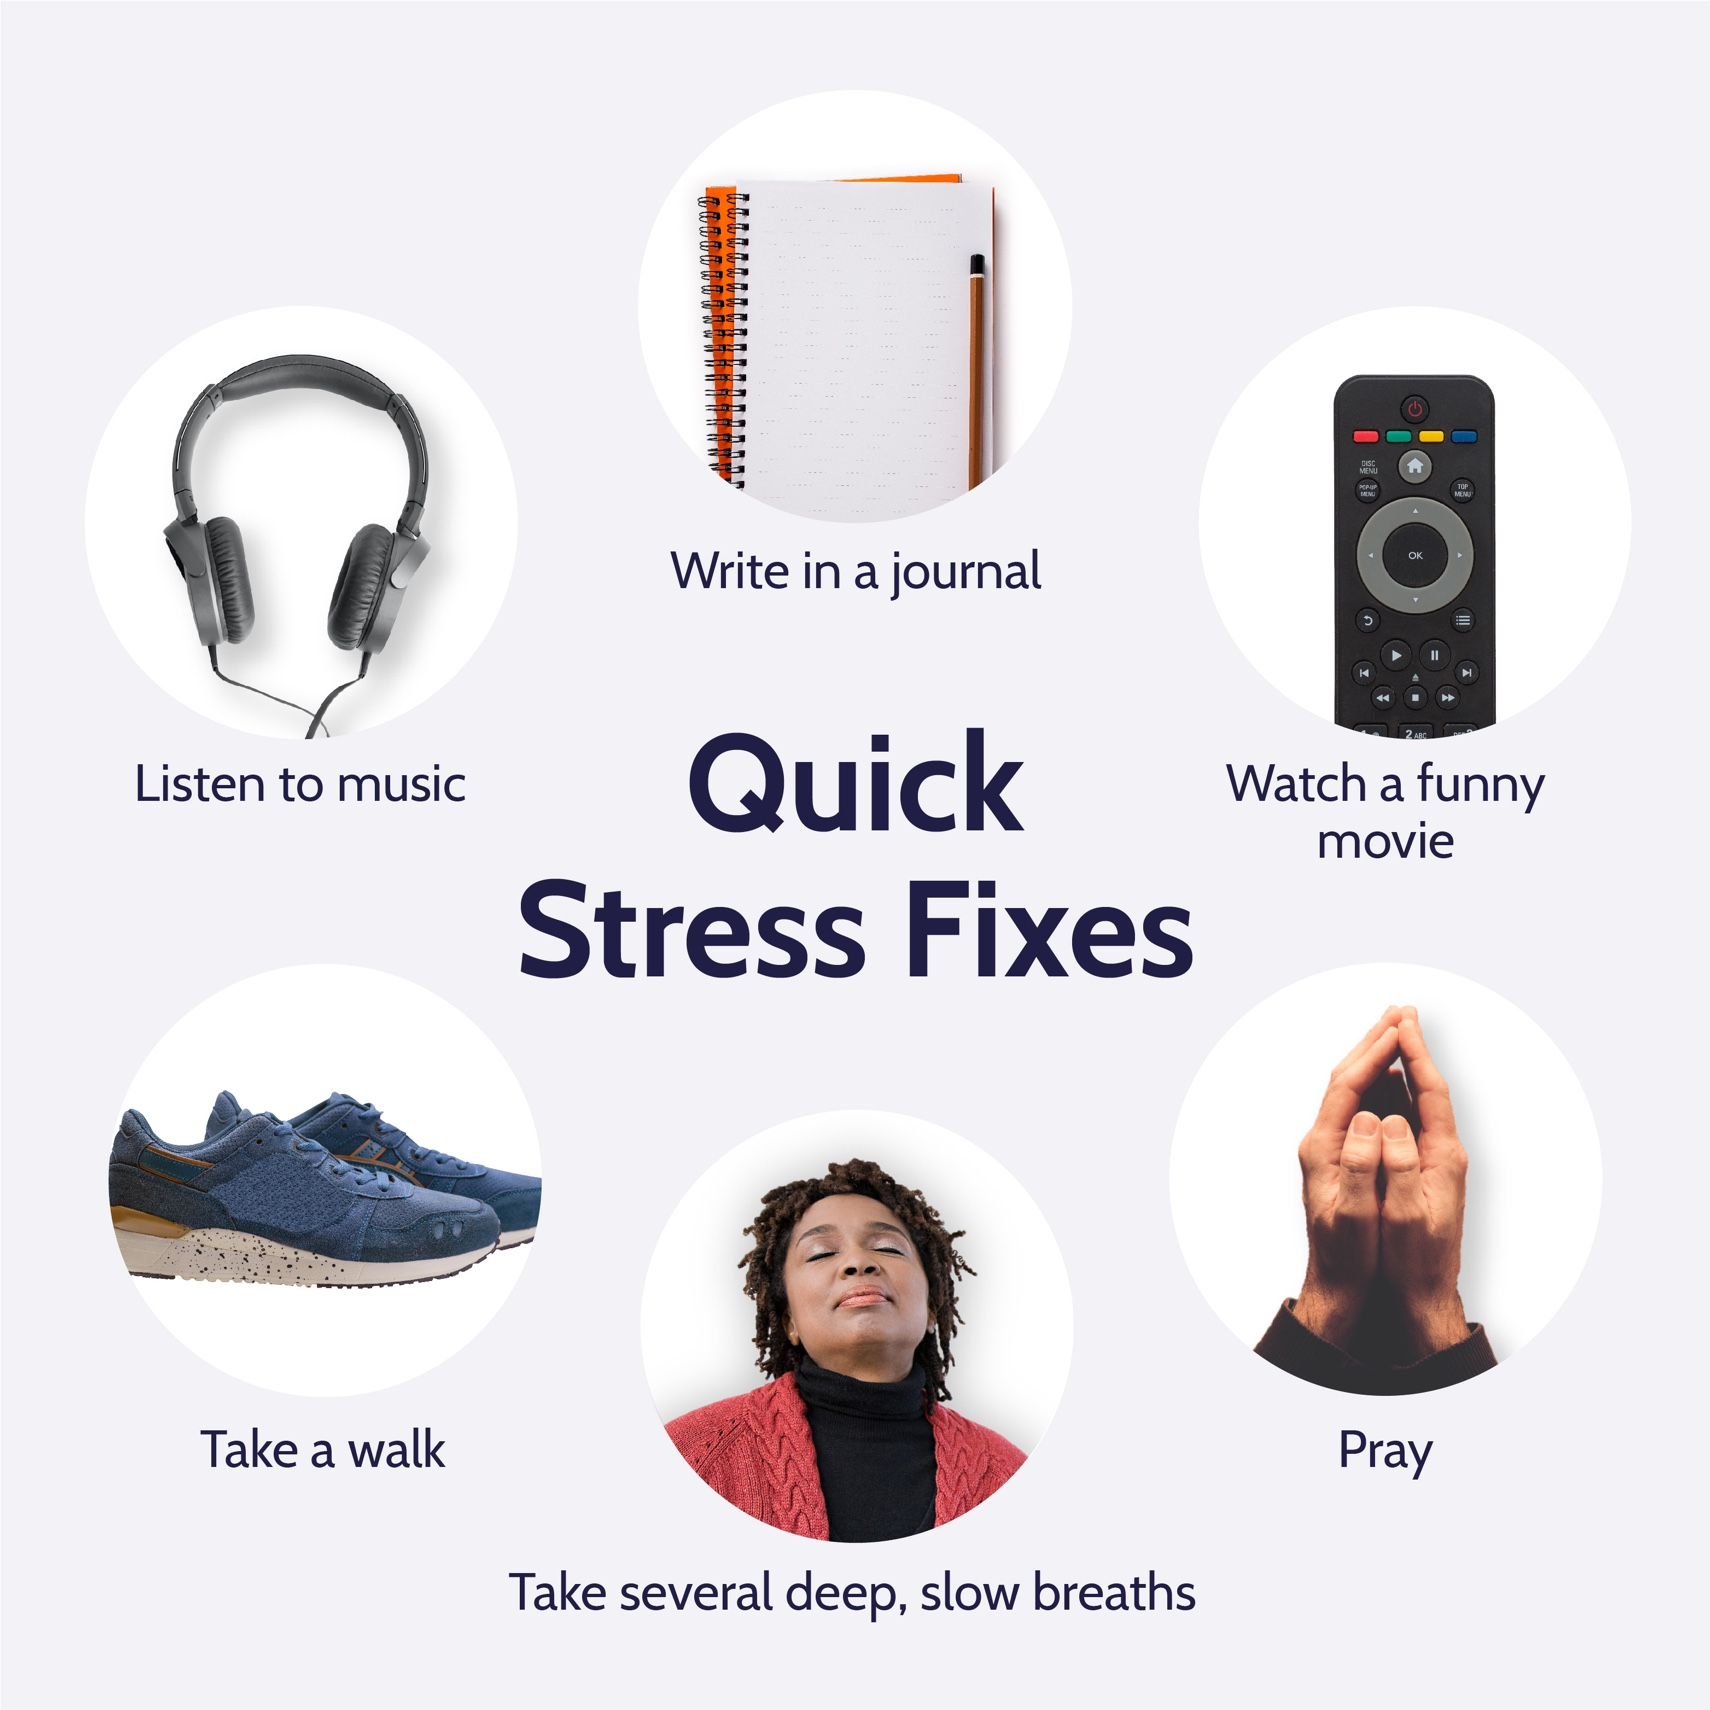 Quick Stress Fixes